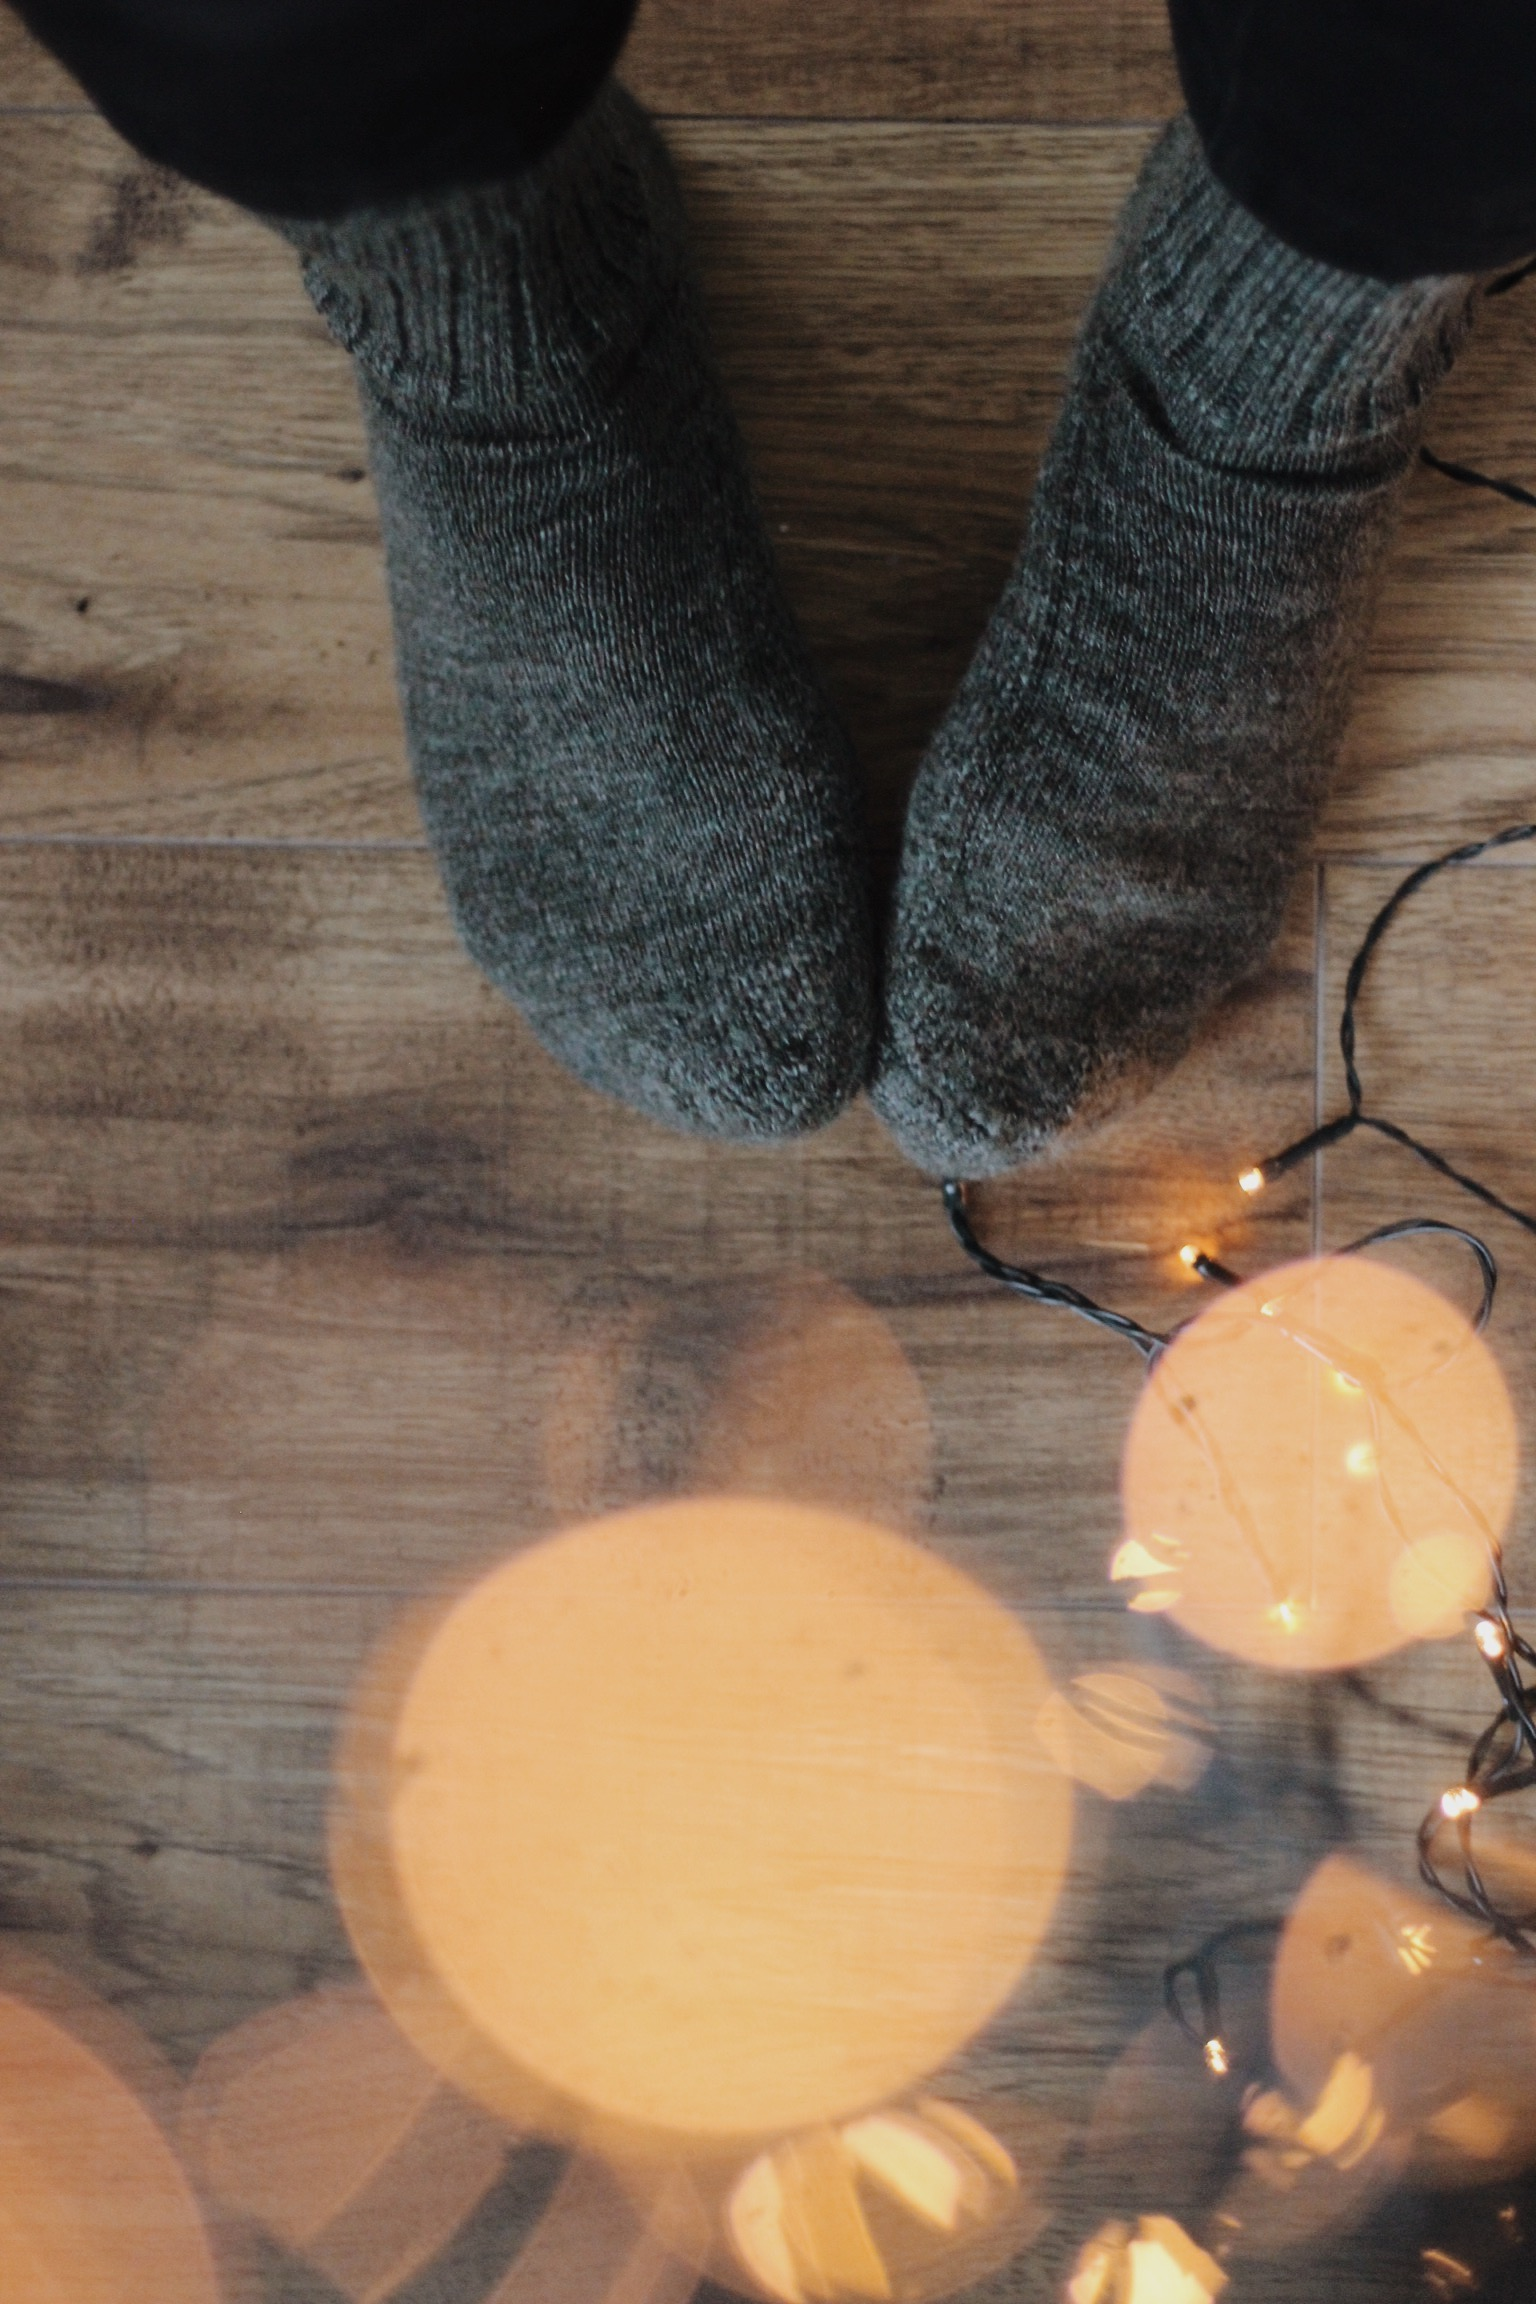 Woolly socks and out of focus Christmas tree lights